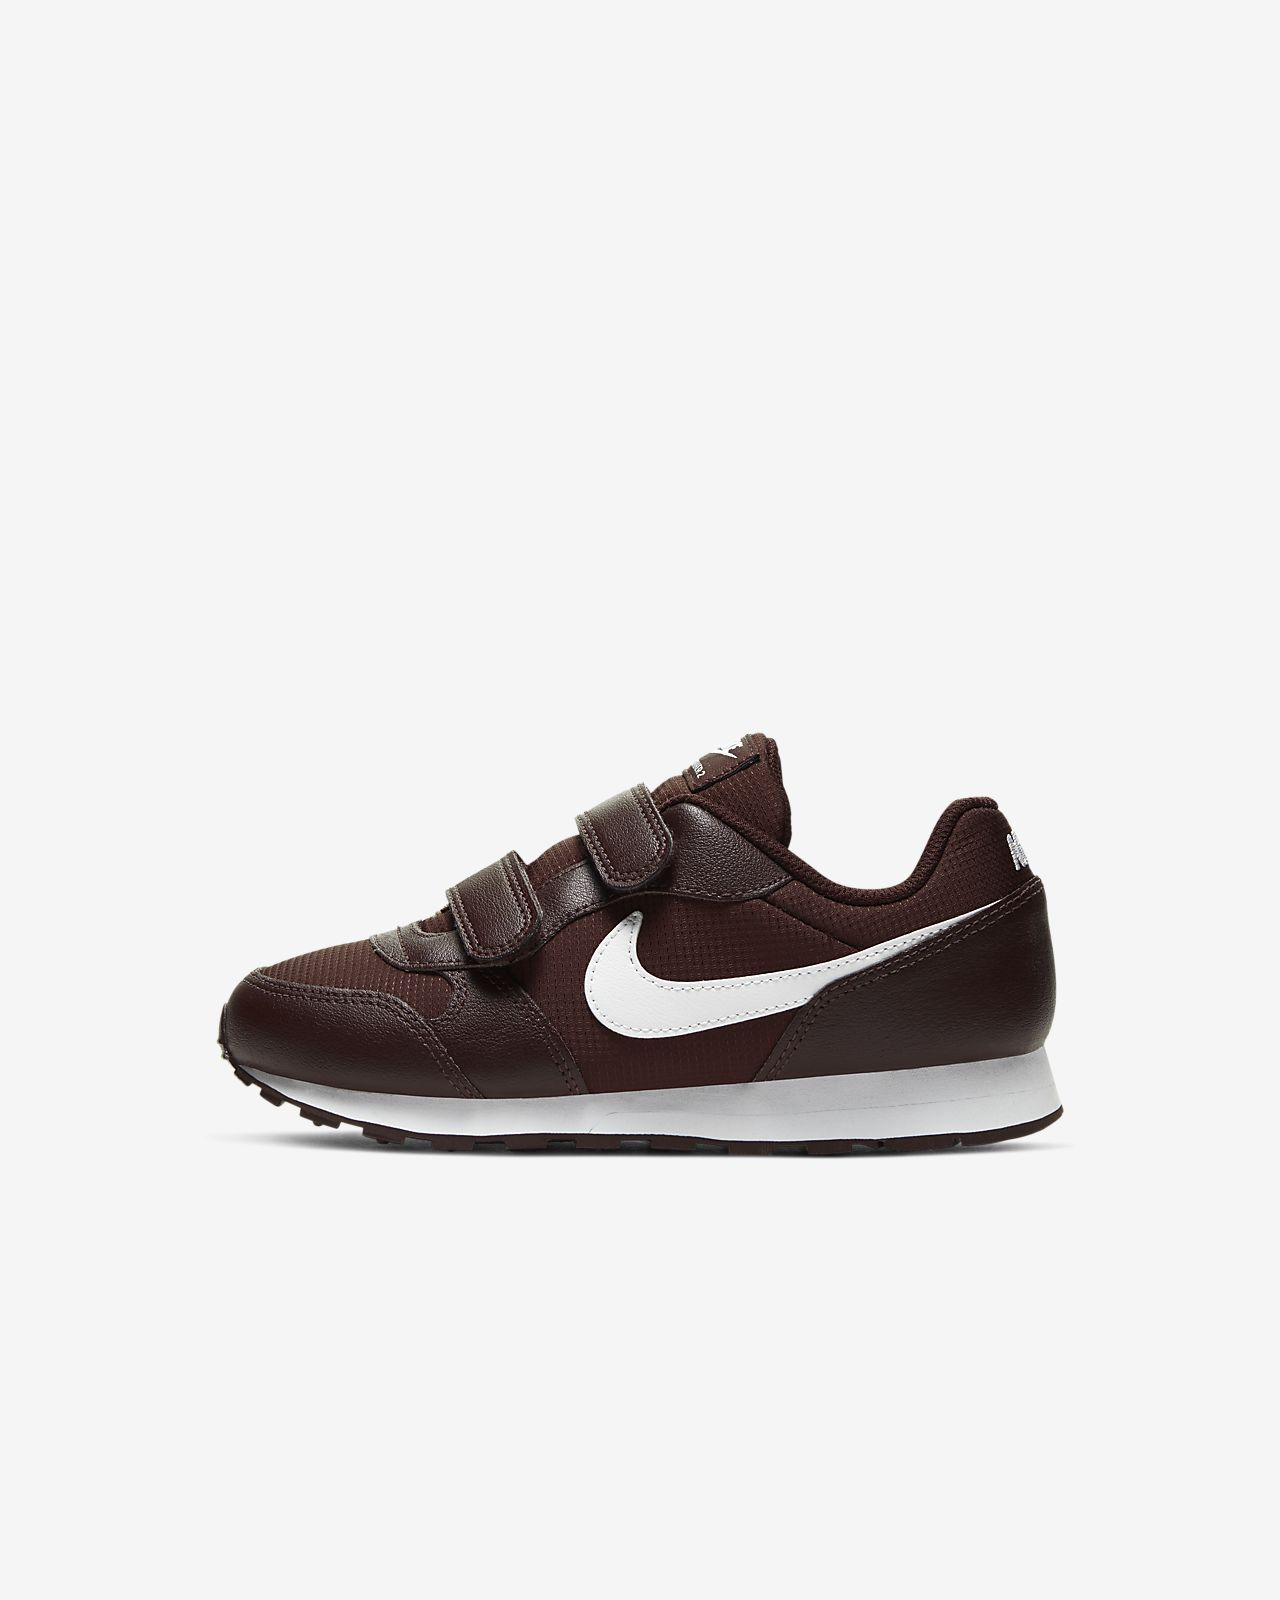 Chaussure Nike MD Runner 2 PE pour Jeune enfant